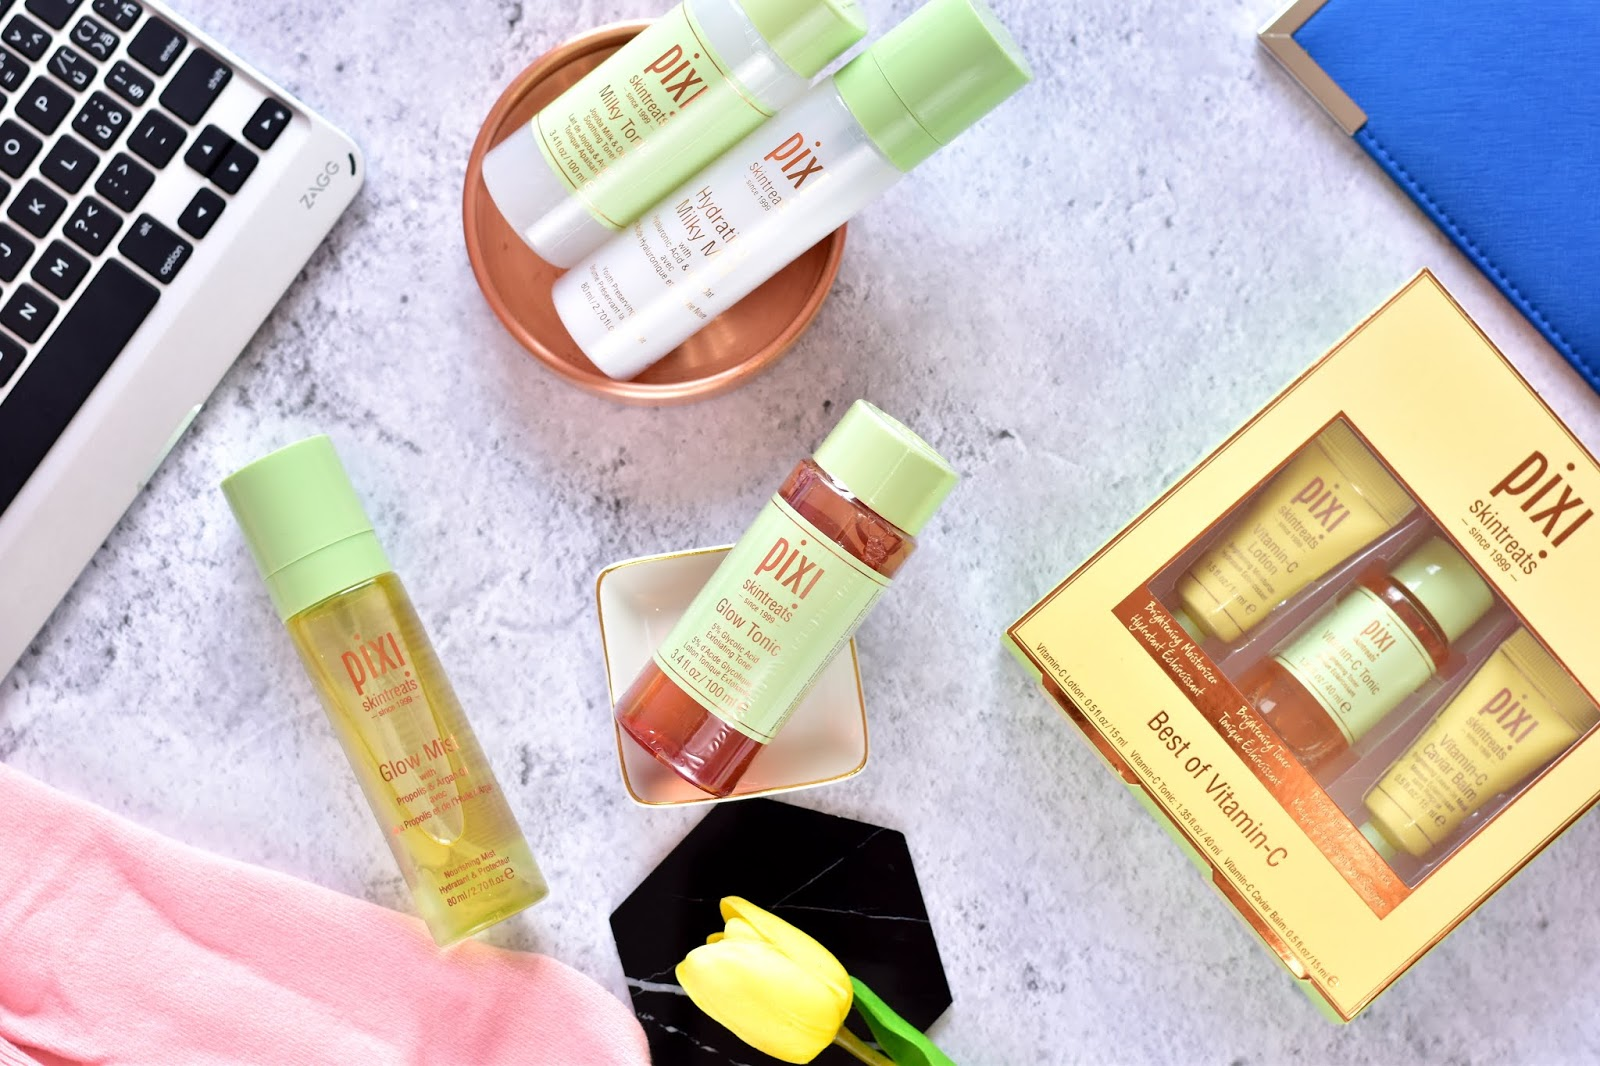 PIXI beauty vitamin C